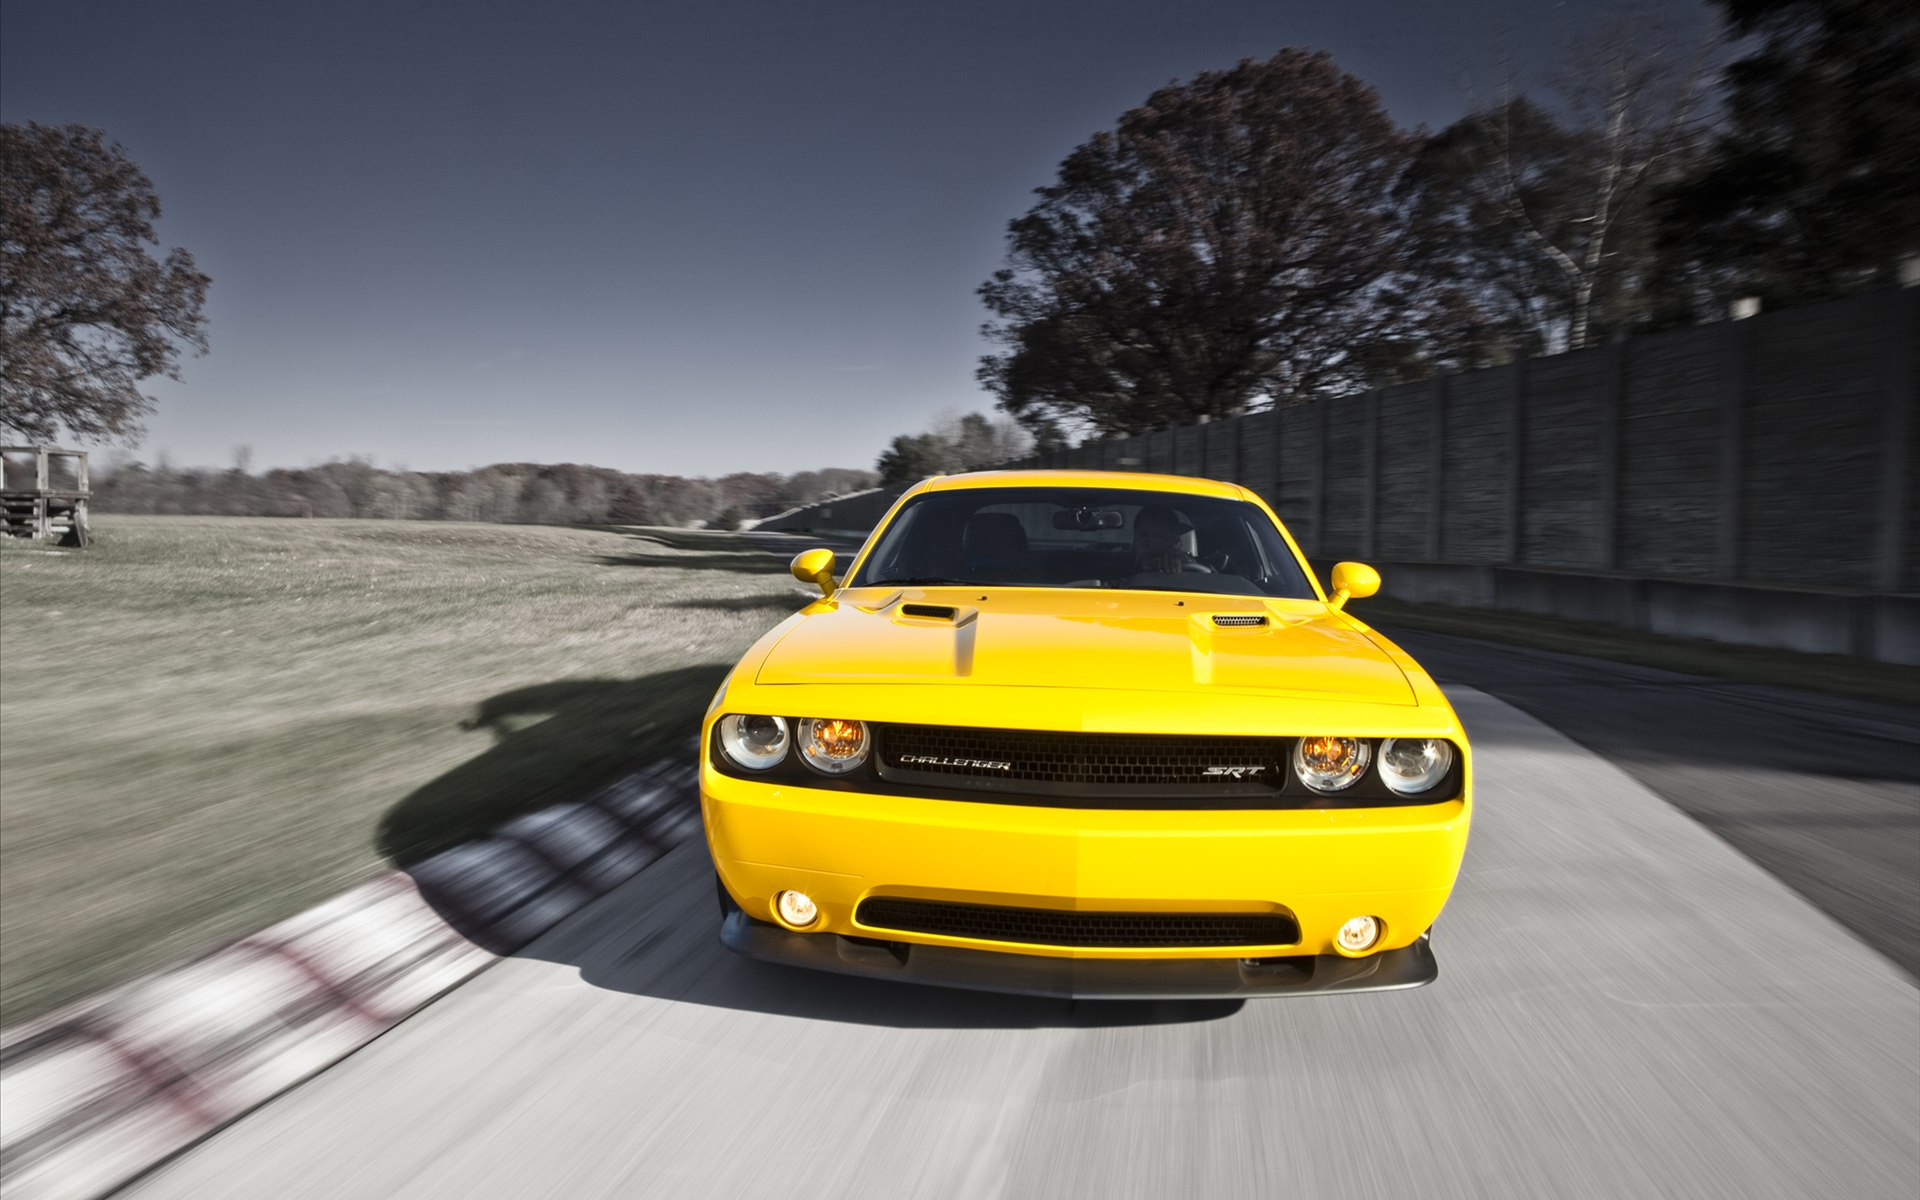 2012 Dodge Challenger SRT8 Wallpaper HD Car Wallpapers 1920x1200